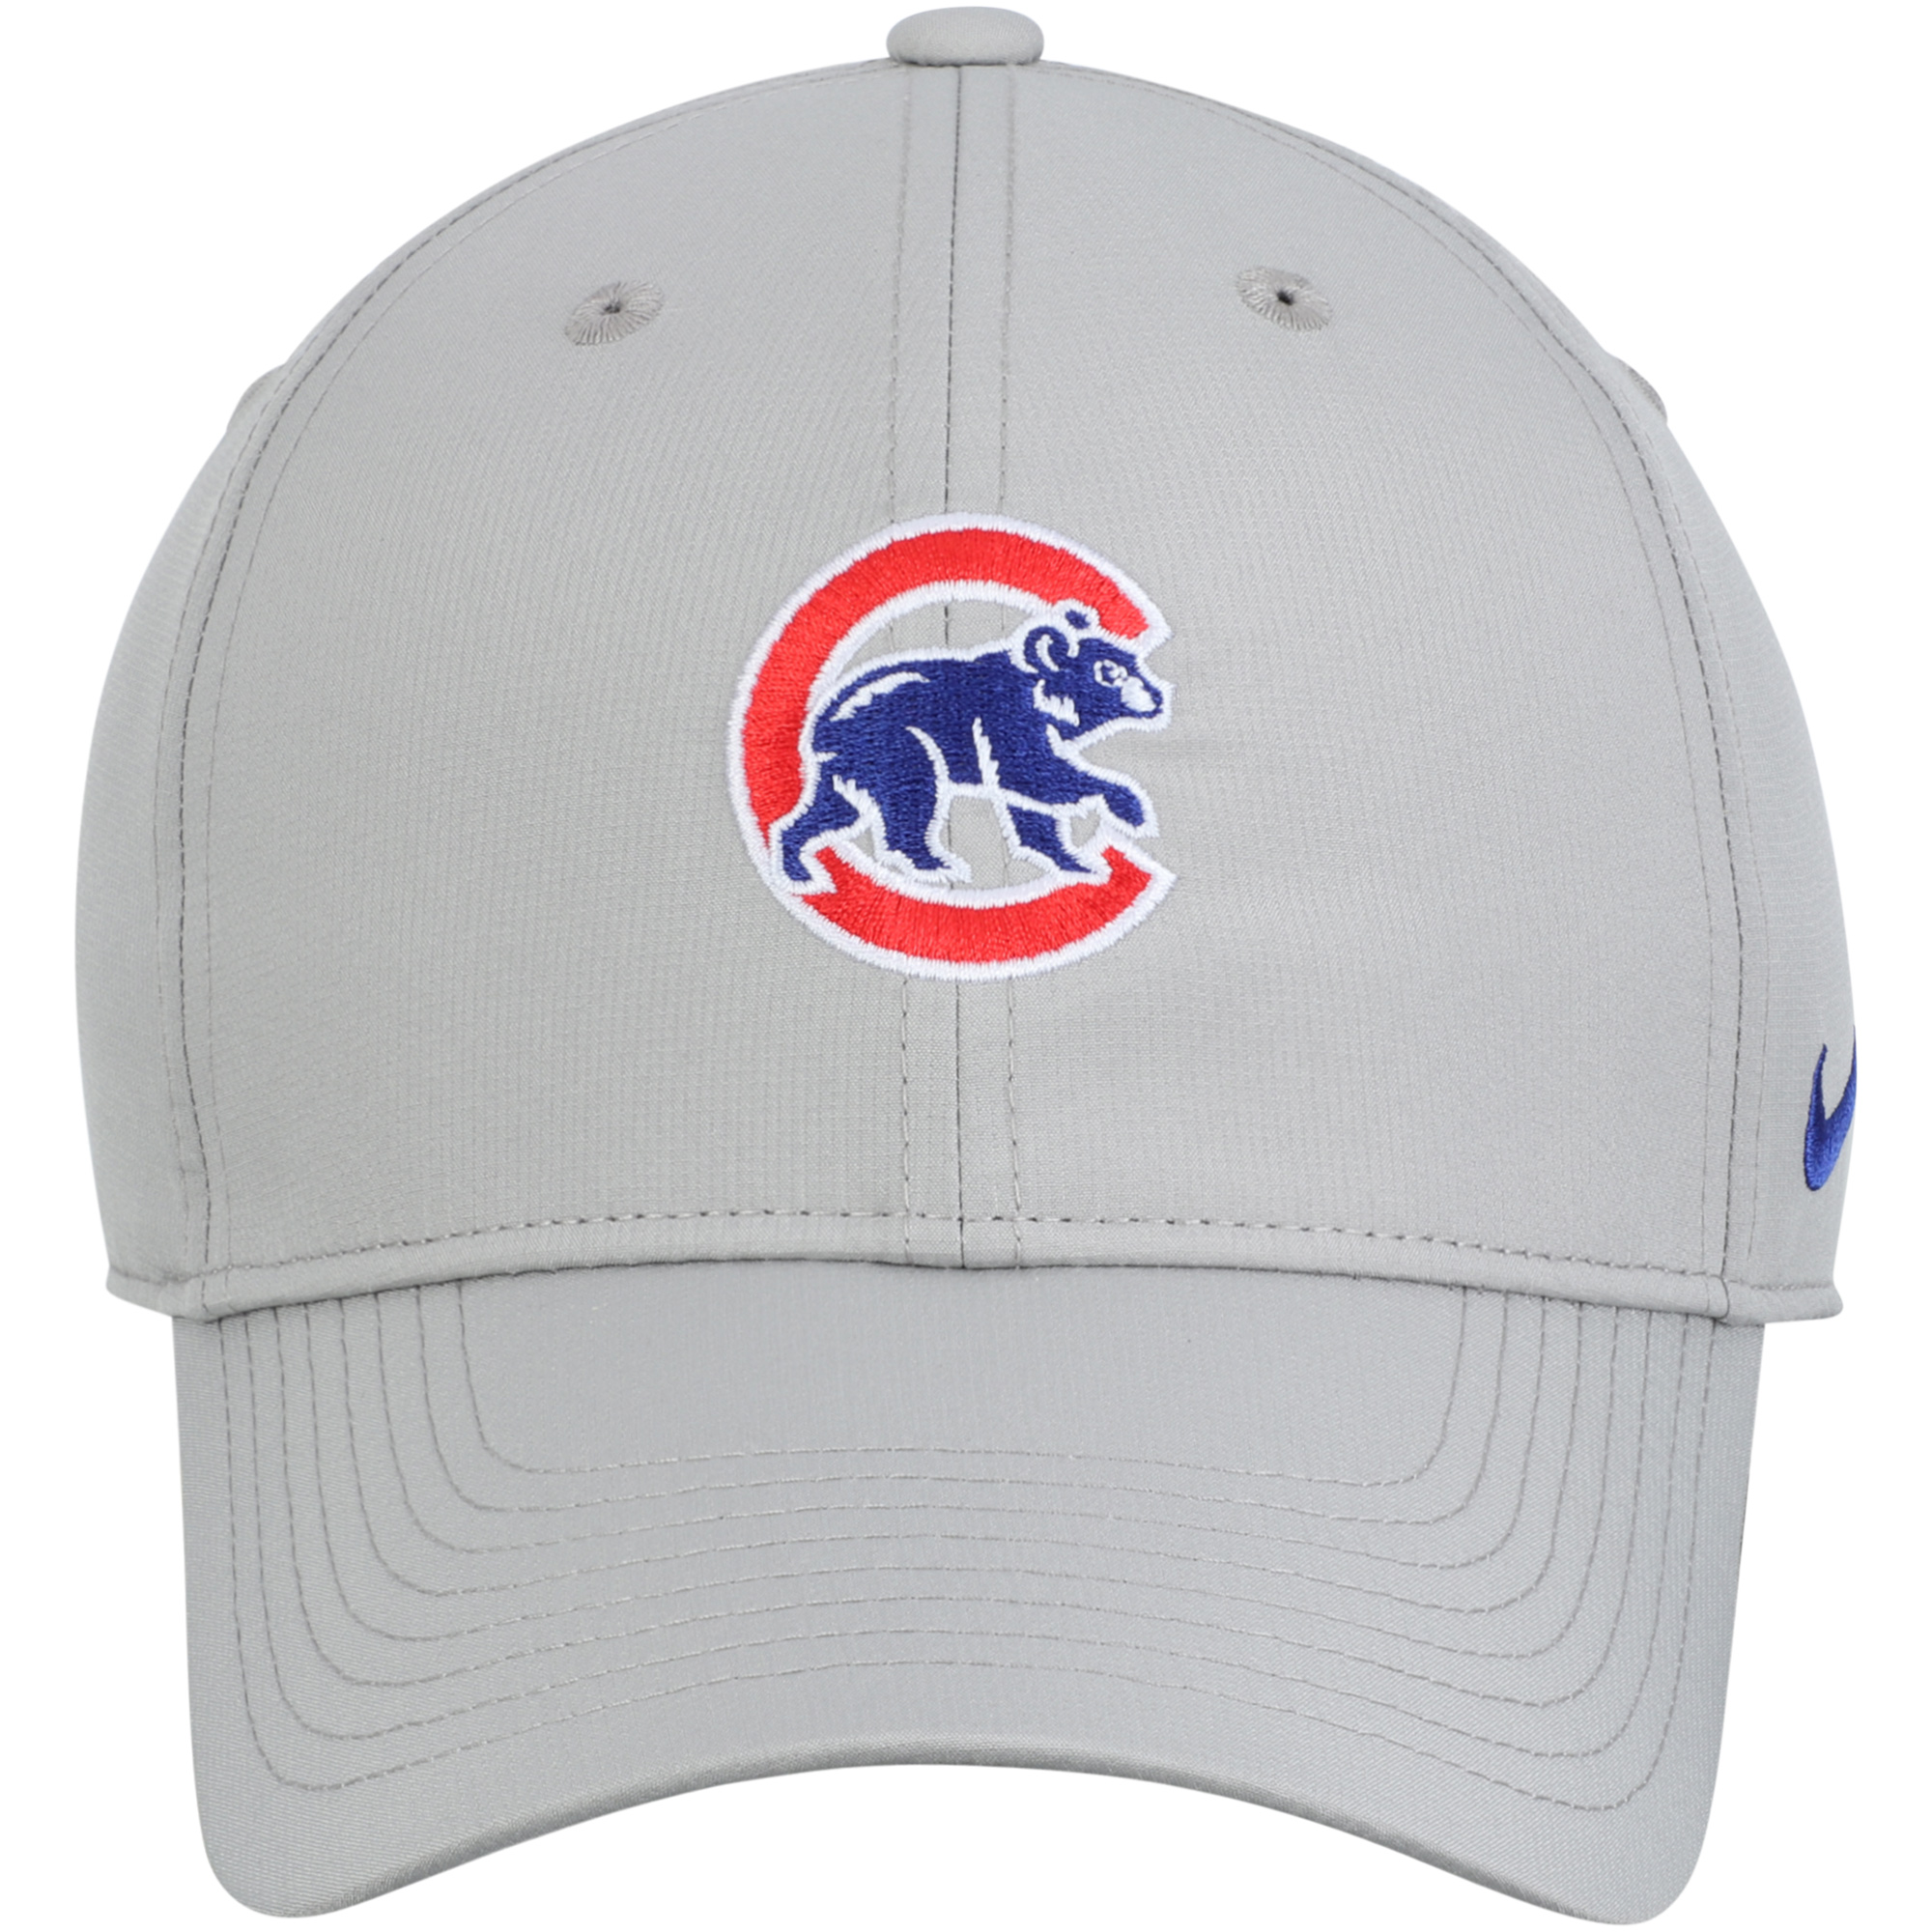 4623017a Chicago Cubs Nike Legacy 91 Adjustable Performance Hat - Gray - OSFA ...